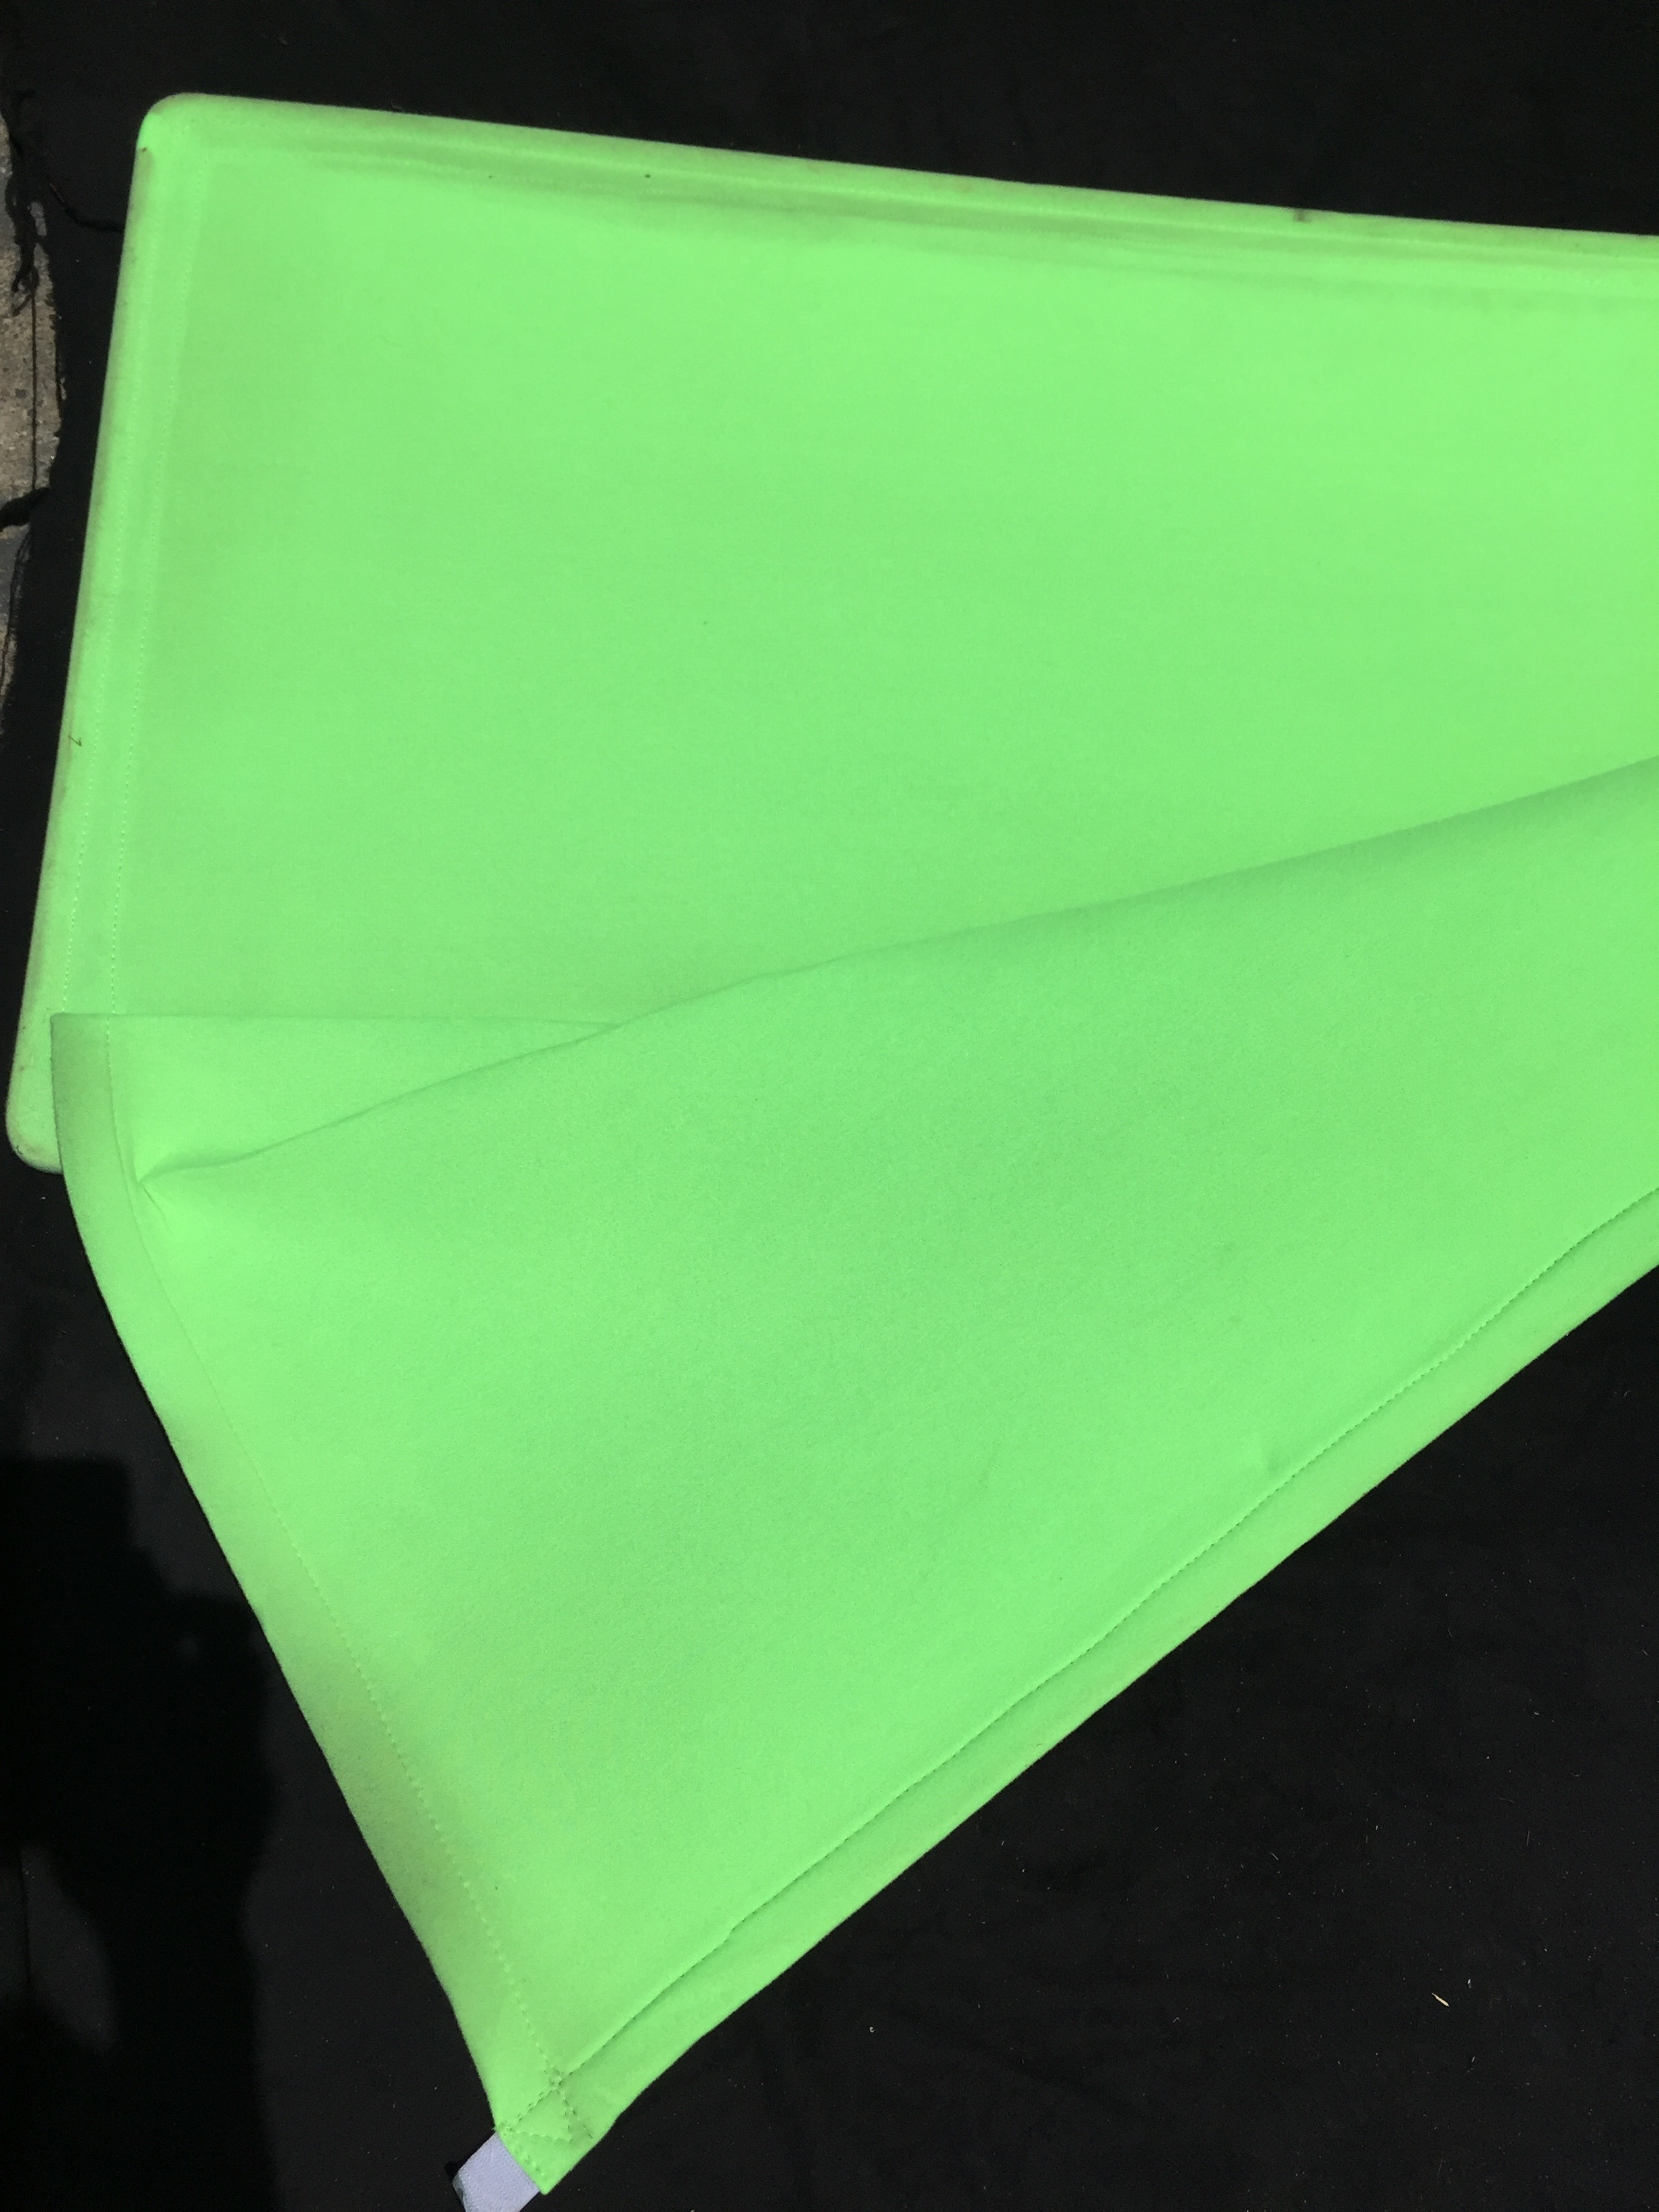 Green Screen Cutter approximately 1.5m x 1.5m.